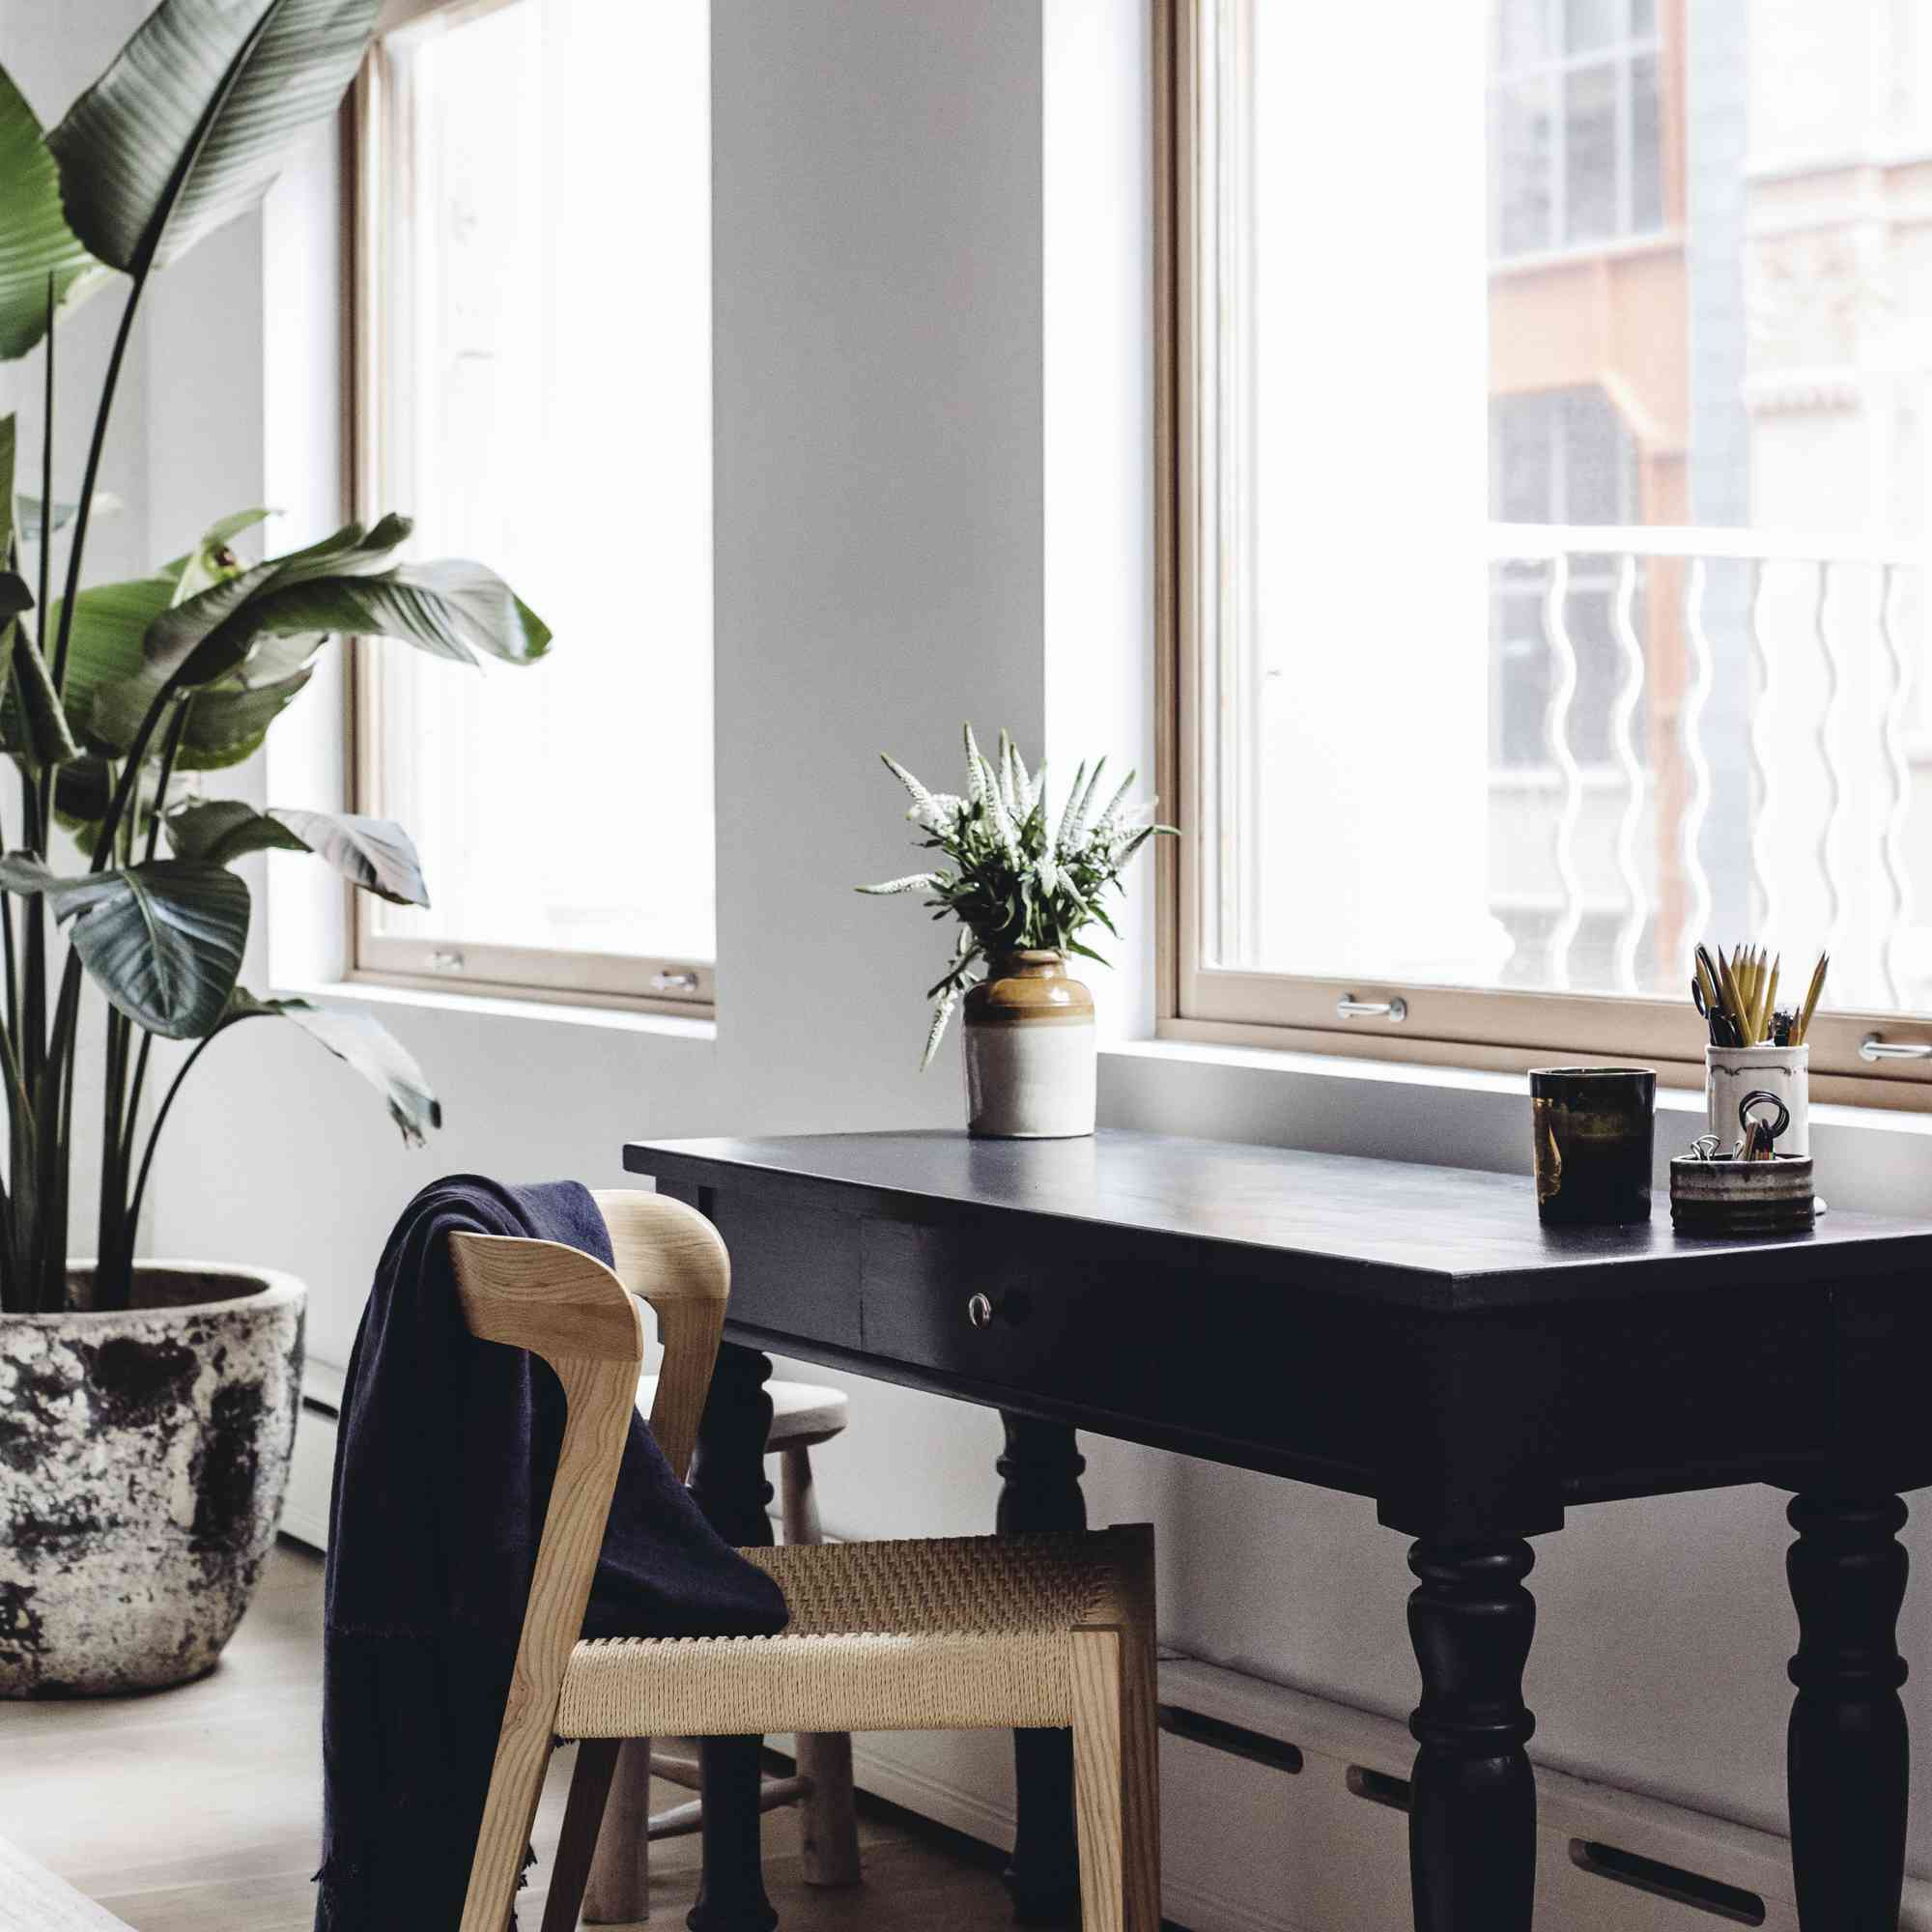 Work from home desk area in a lofty apartment